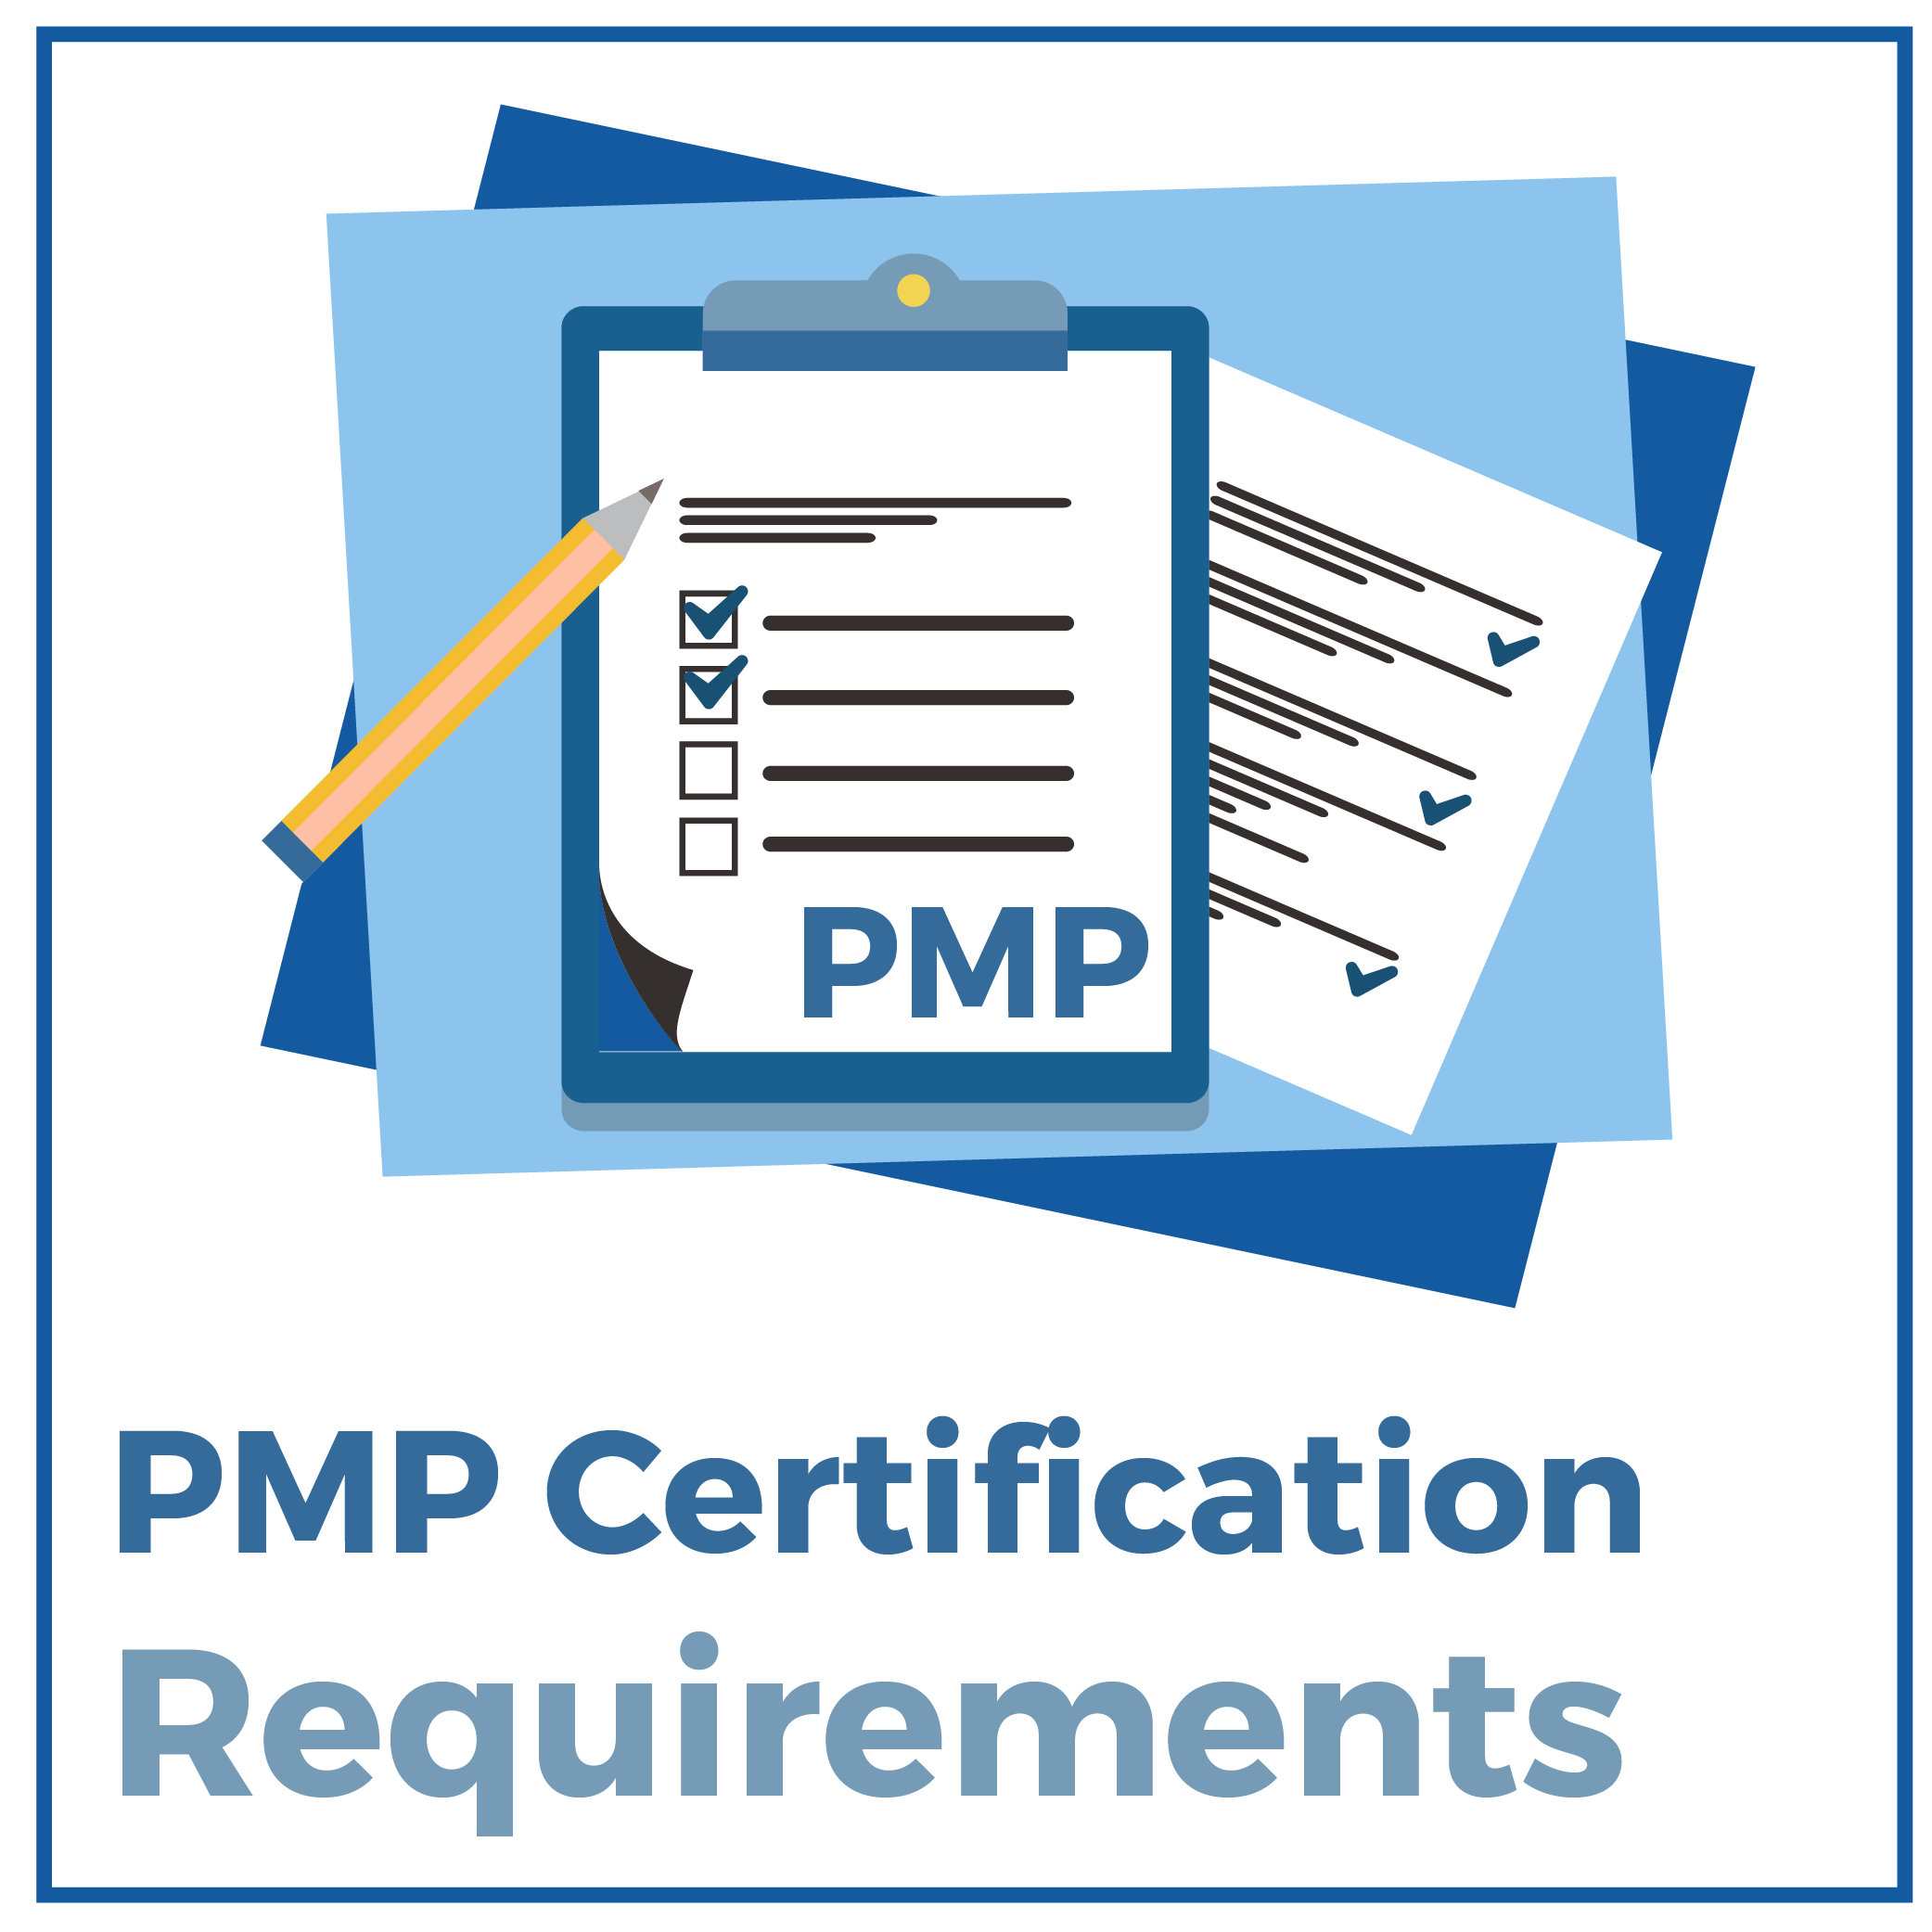 PMP Certification Requirements